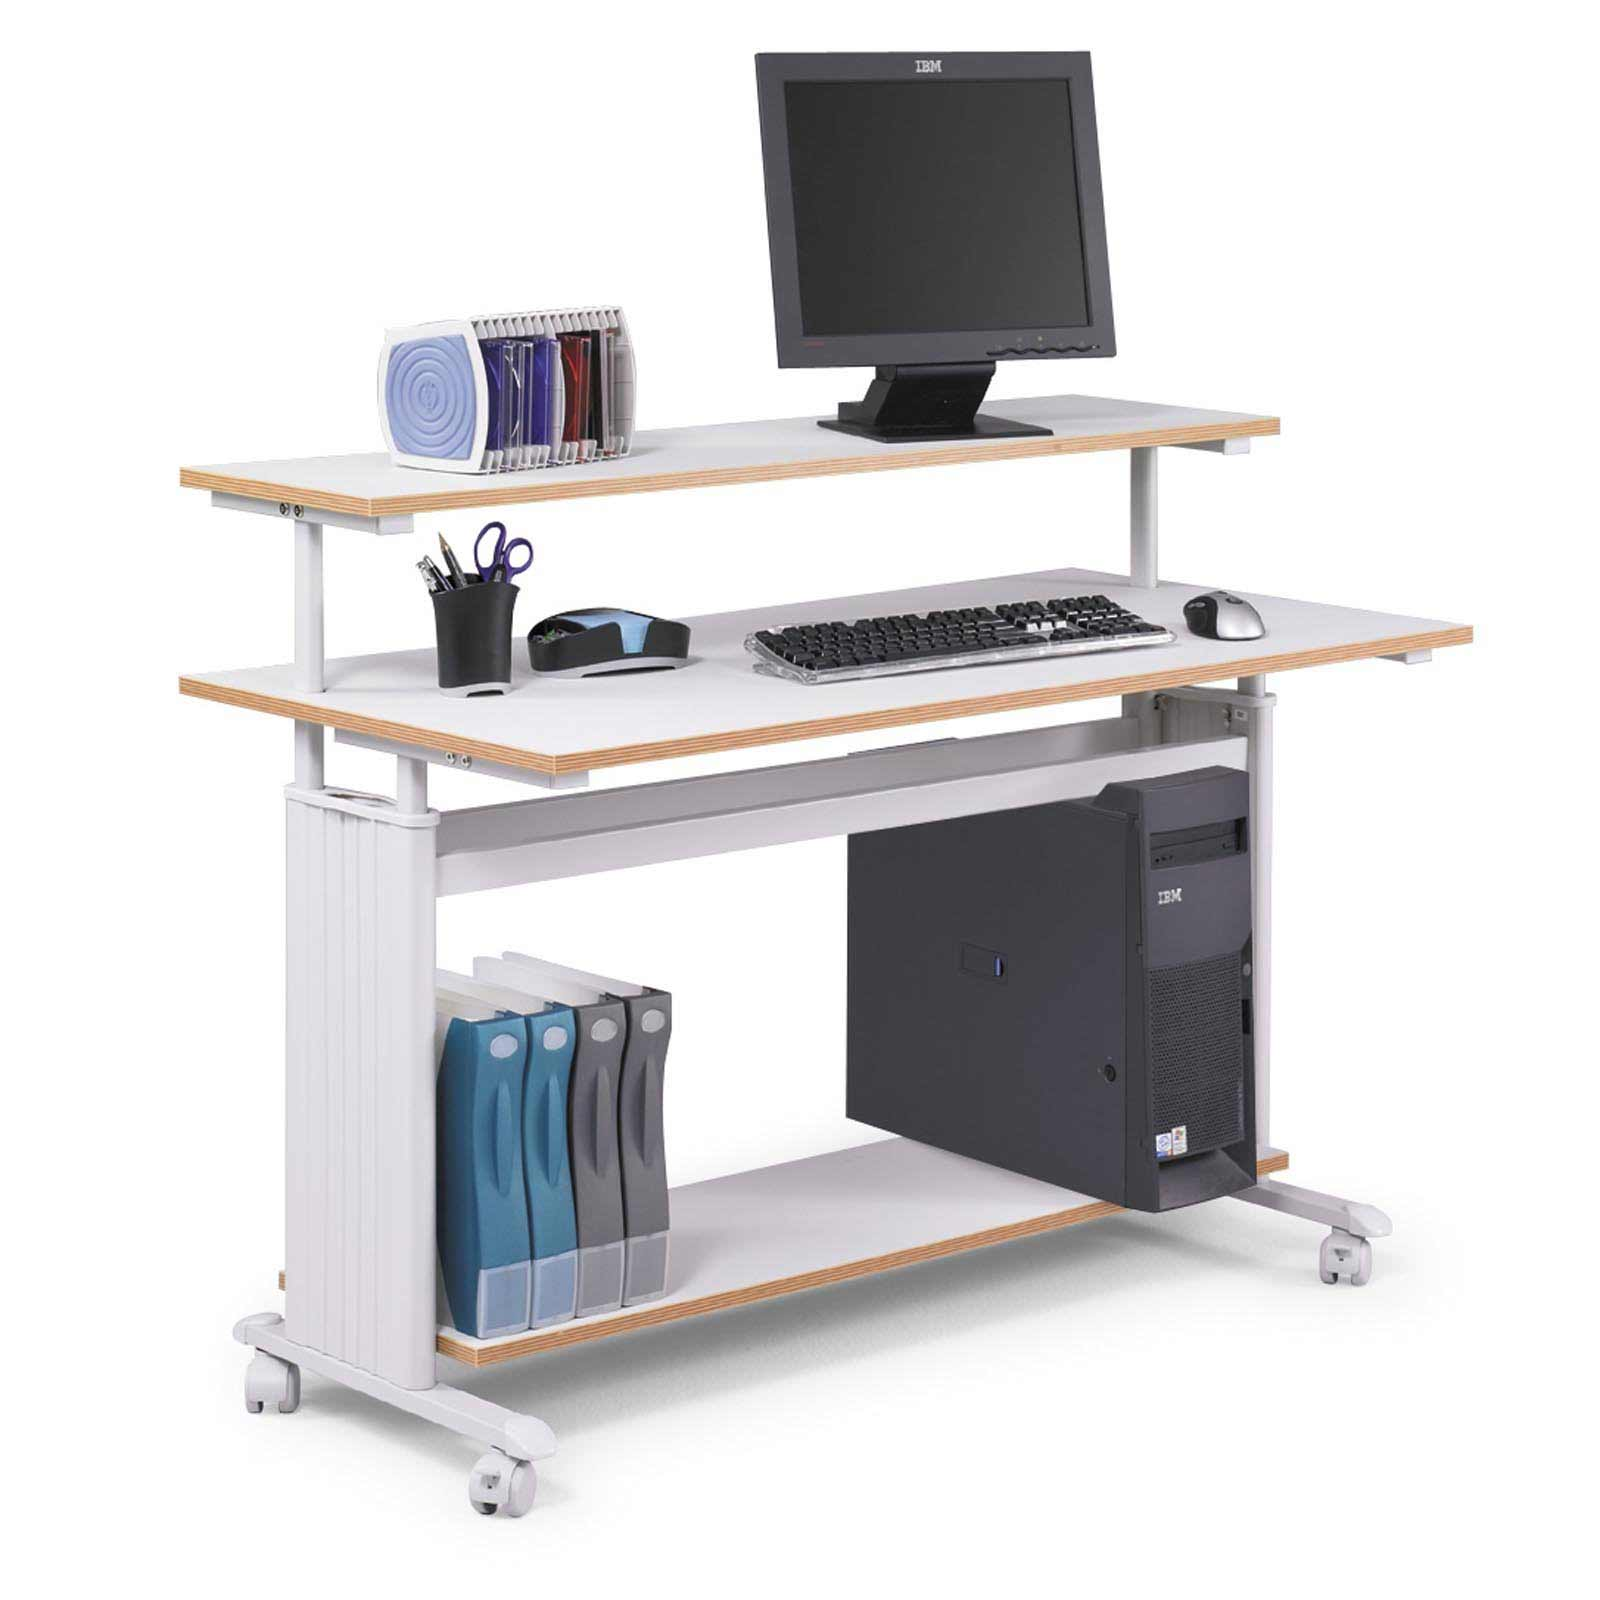 Safco big white computer desk workstation